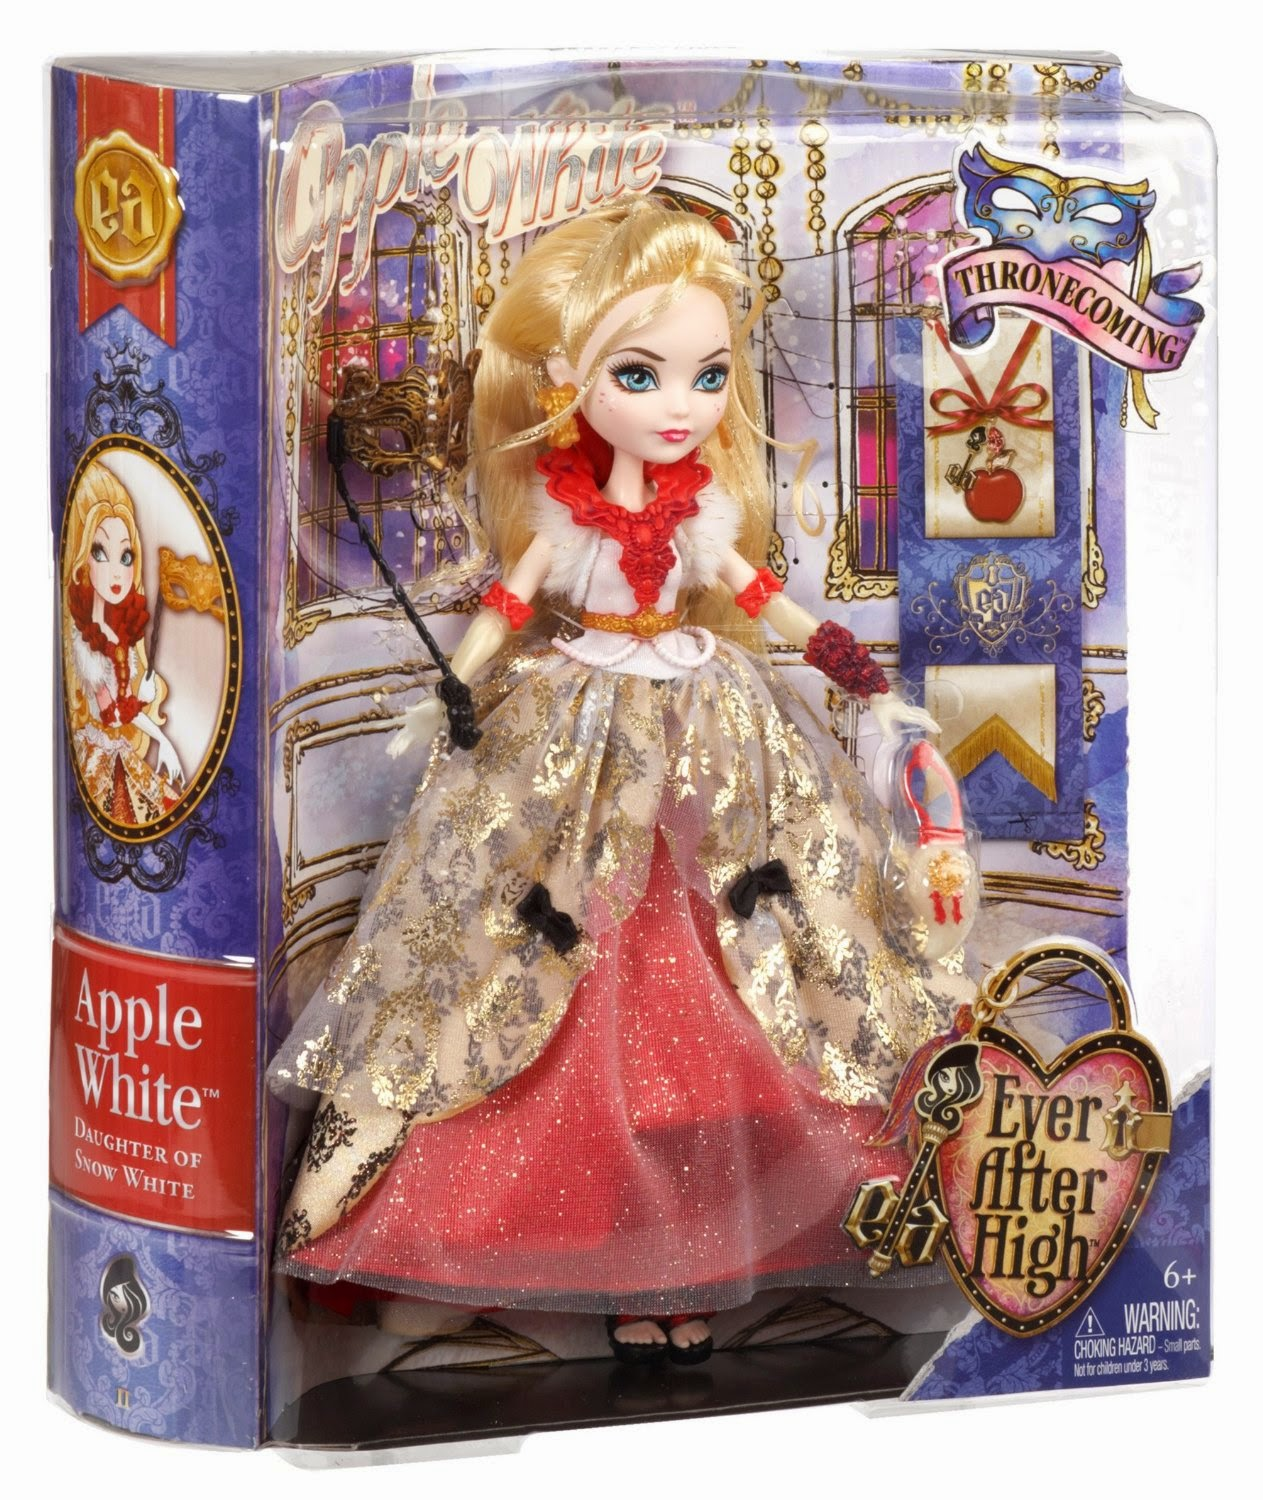 Ever After High Thronecoming Apple White Doll - AnnMarie ...